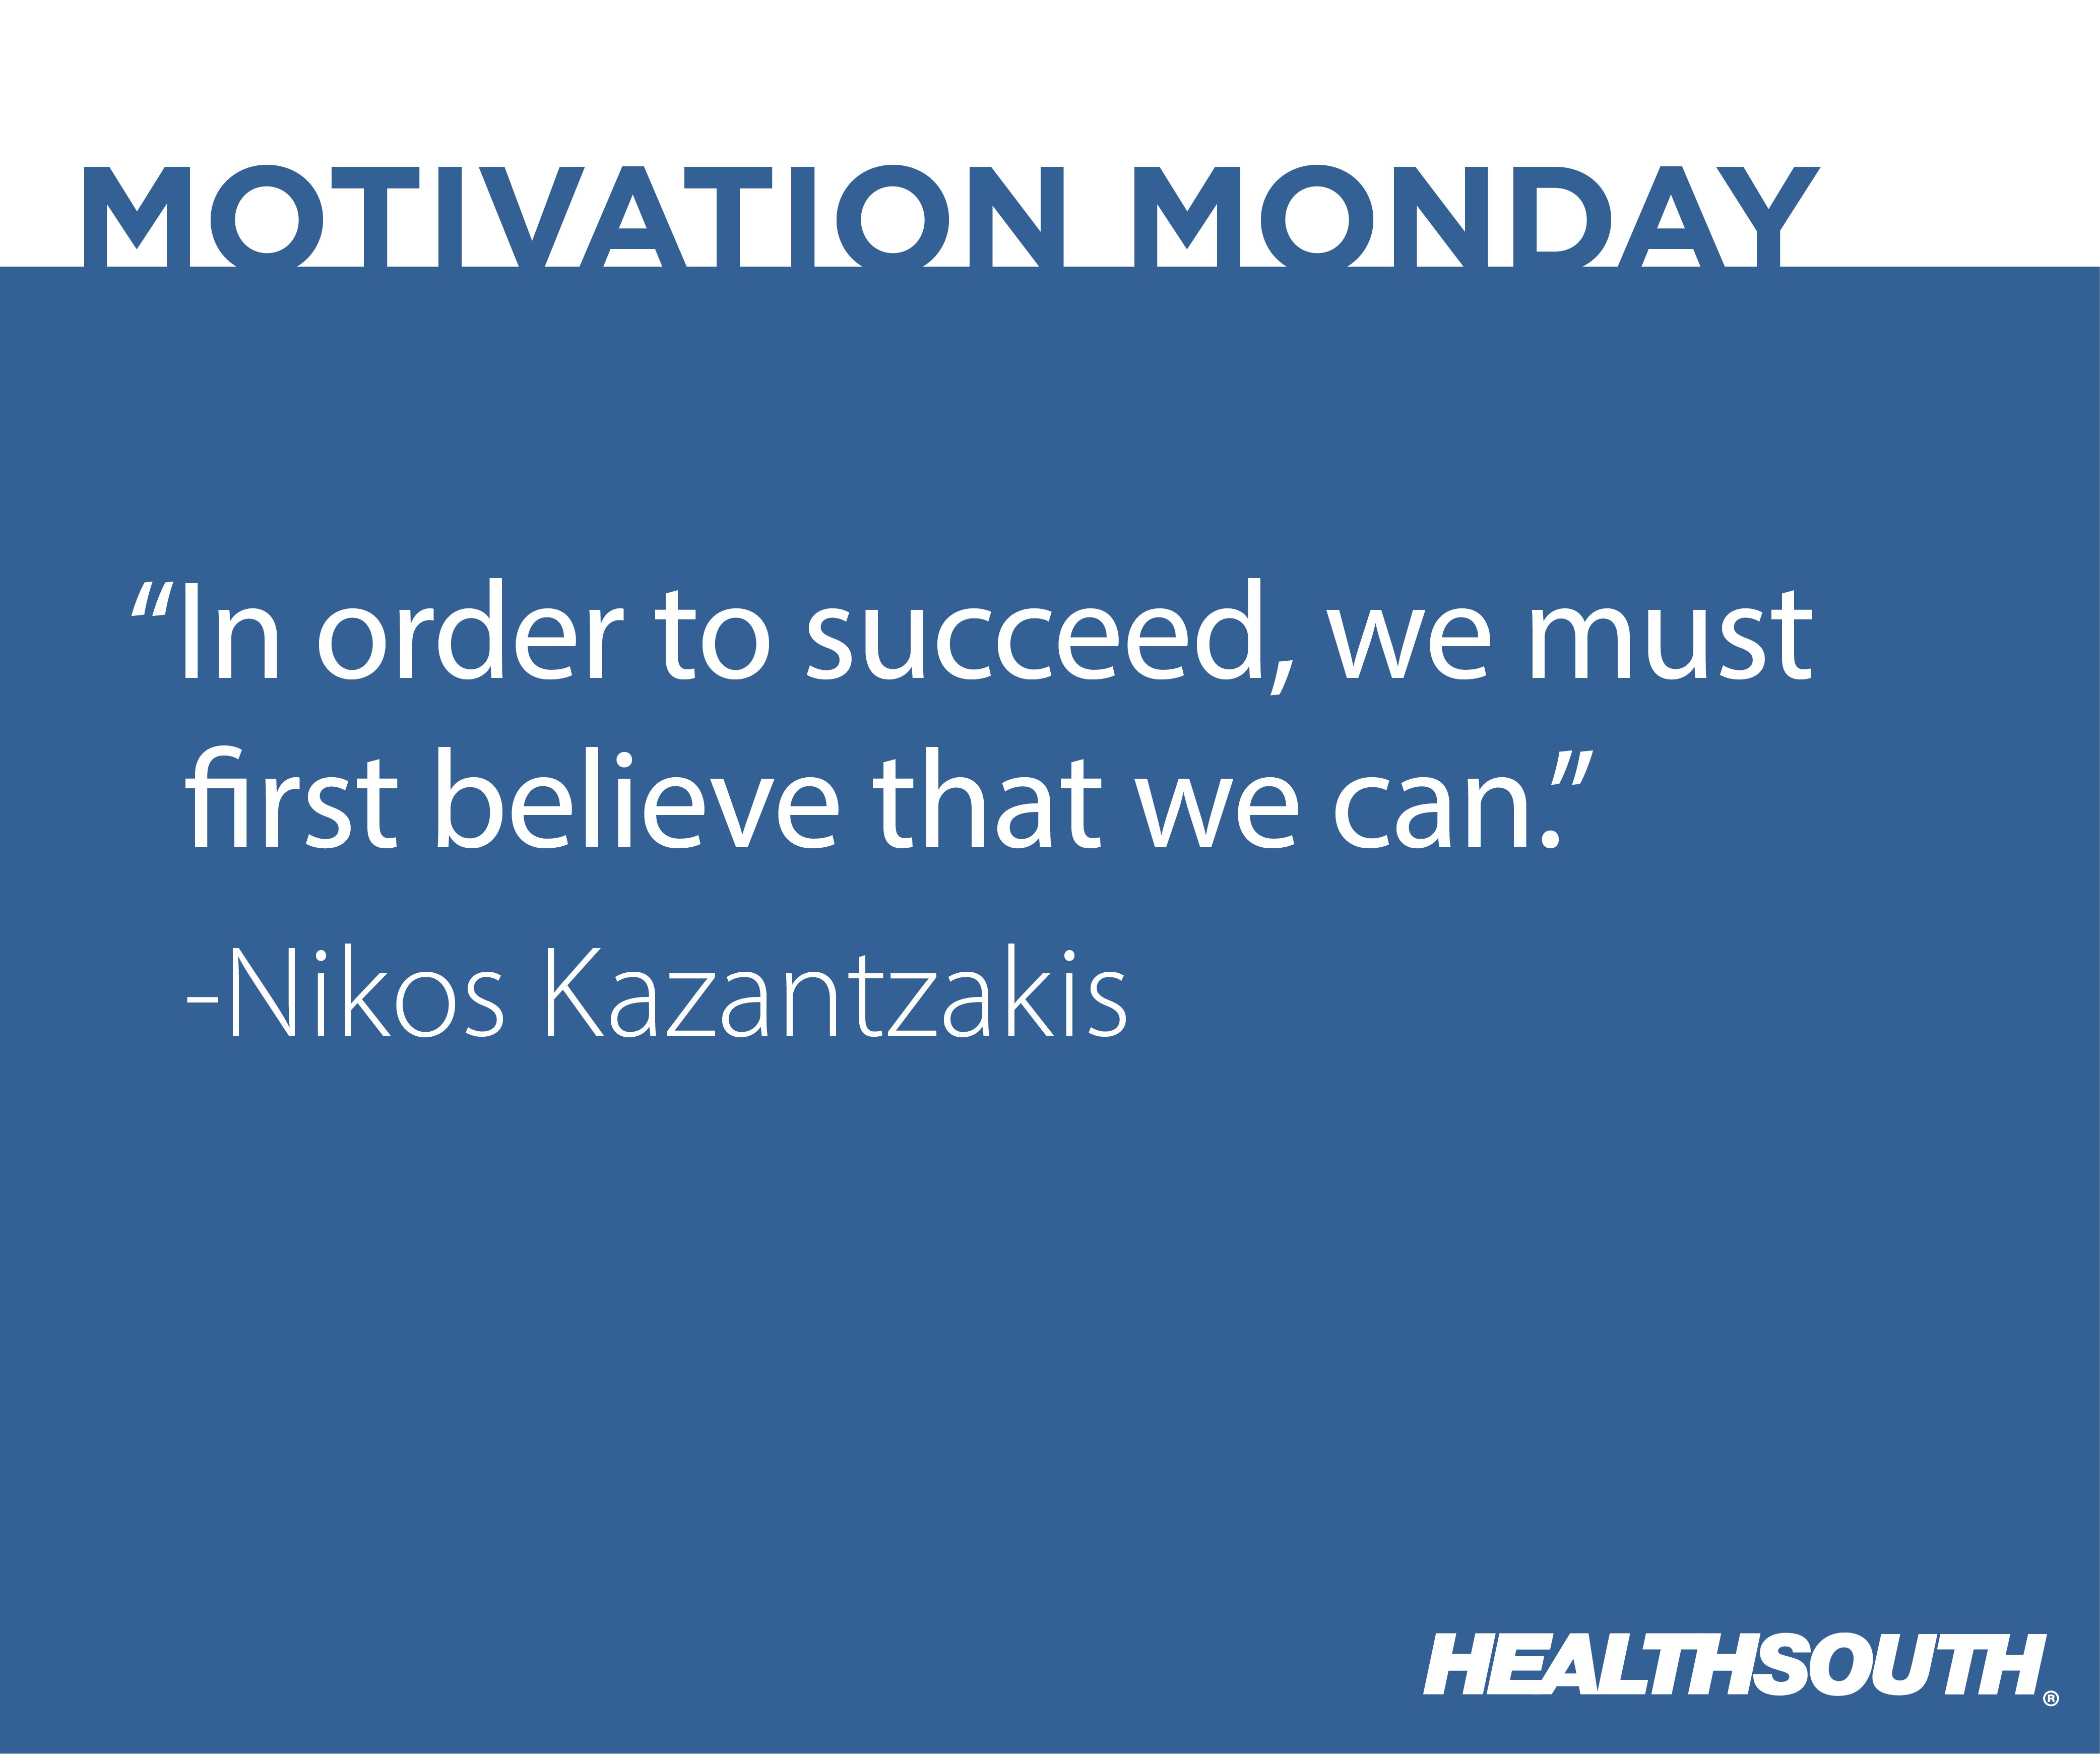 Healthsouth physical therapy - Motivational_monday 02 Png